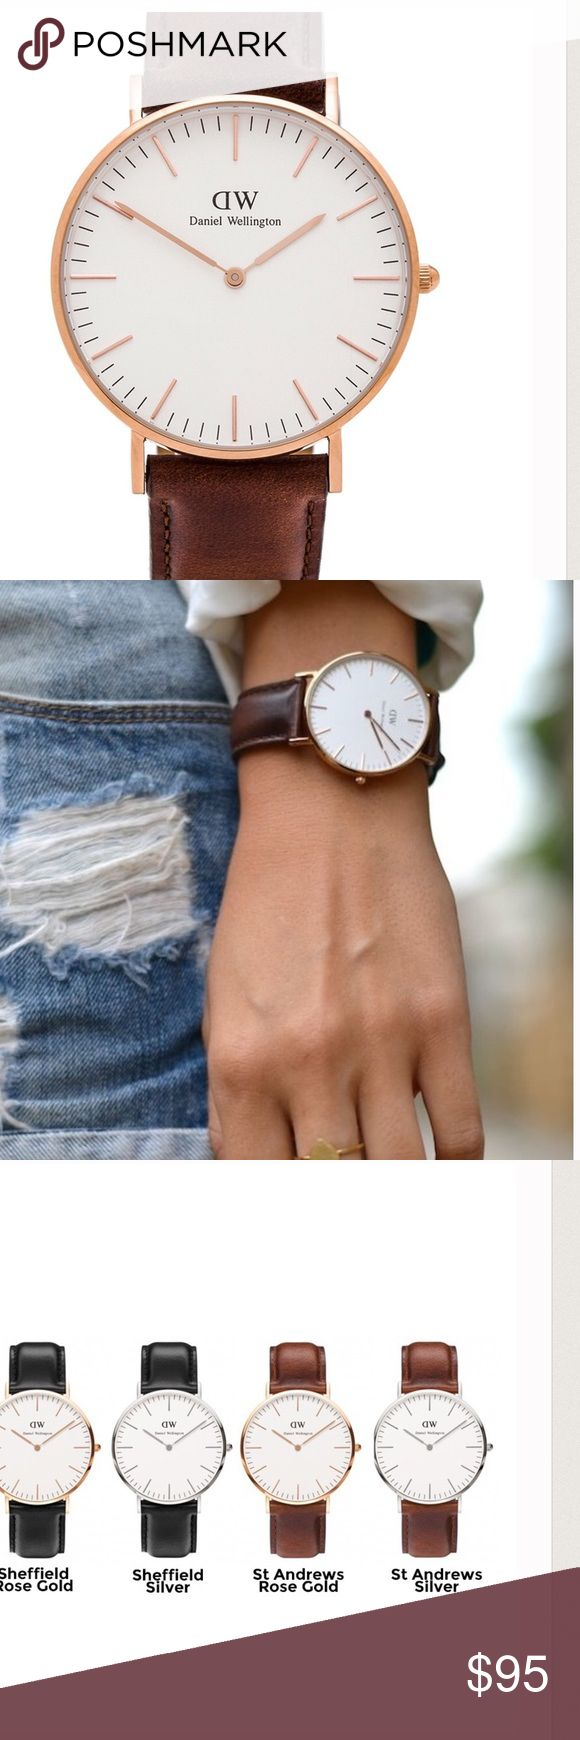 Daniel Wellington St Andrews 36mm watch Gorgeous timepiece by Daniel Wellington. Watch face is 36mm and straps are a beautiful mahogany color. Does have some wear - scratches on face (small) and lines on leather strap from wear - see picture above. Price reflects. Daniel Wellington Accessories Watches